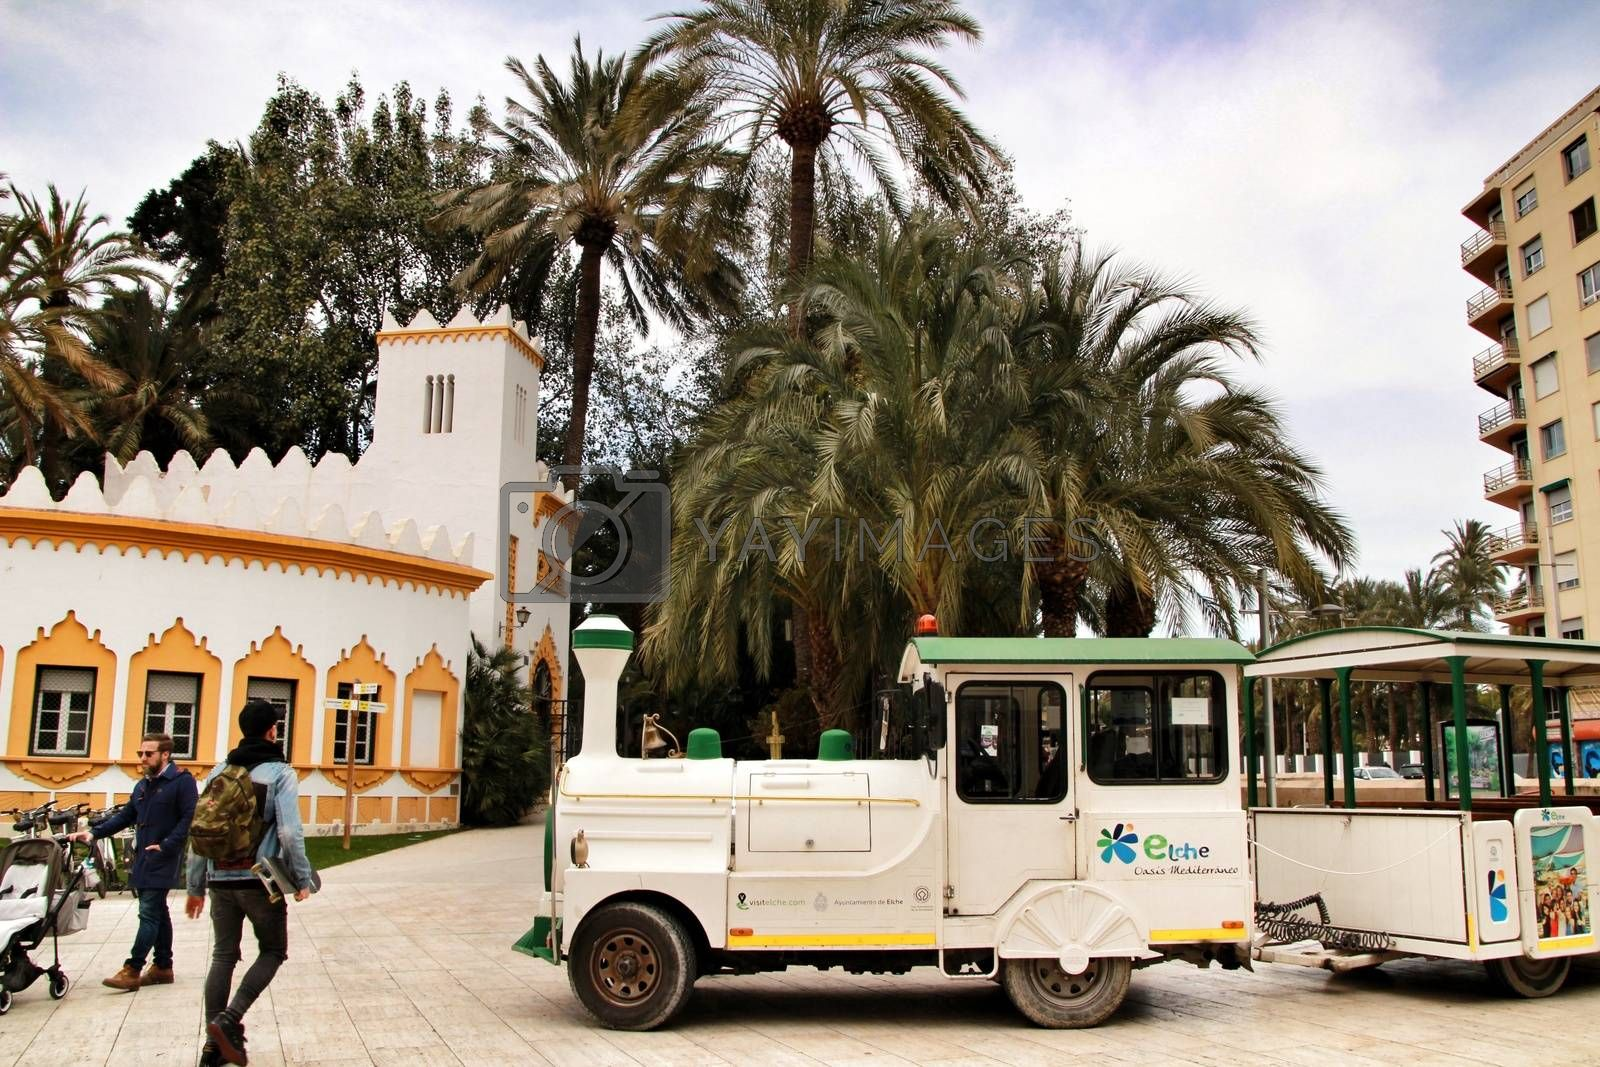 Elche, Alicante, Spain- February 19, 2019: Guided tour on Tourist train through the streets and palm groves in winter under blue sky. Tourist Office in the background.